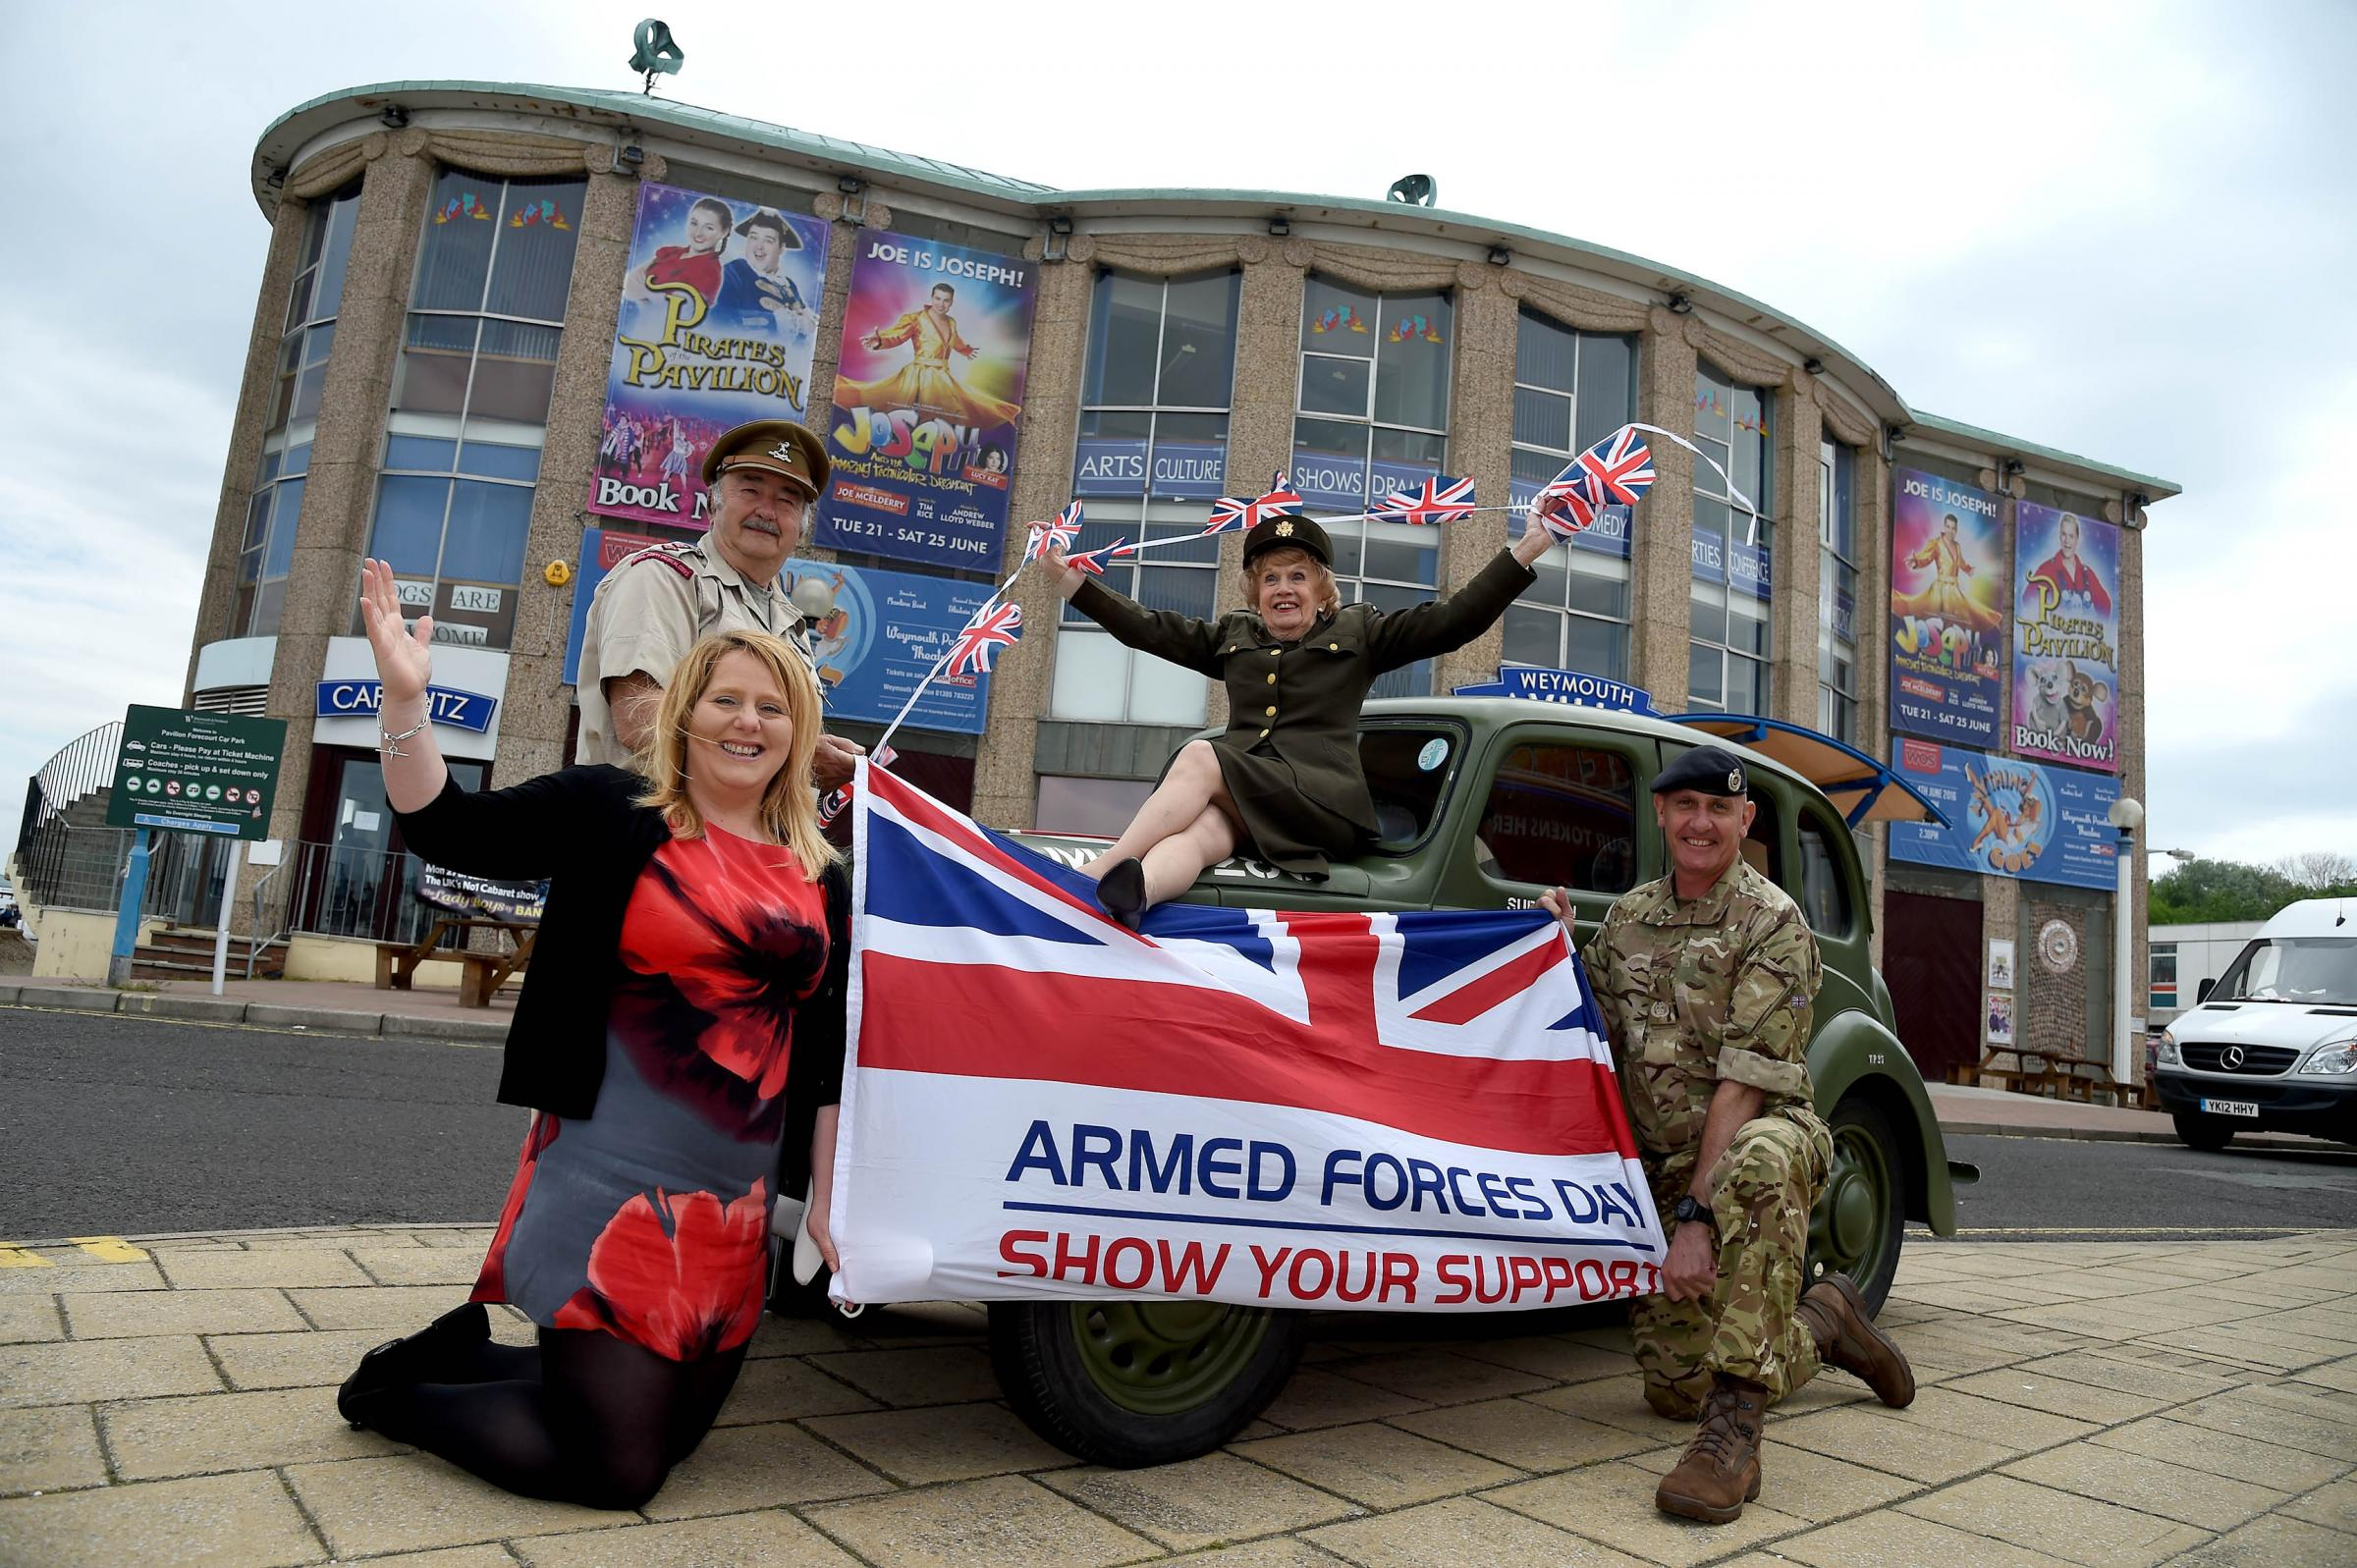 Armed Forces Parade 2018: Full timetable and road closures